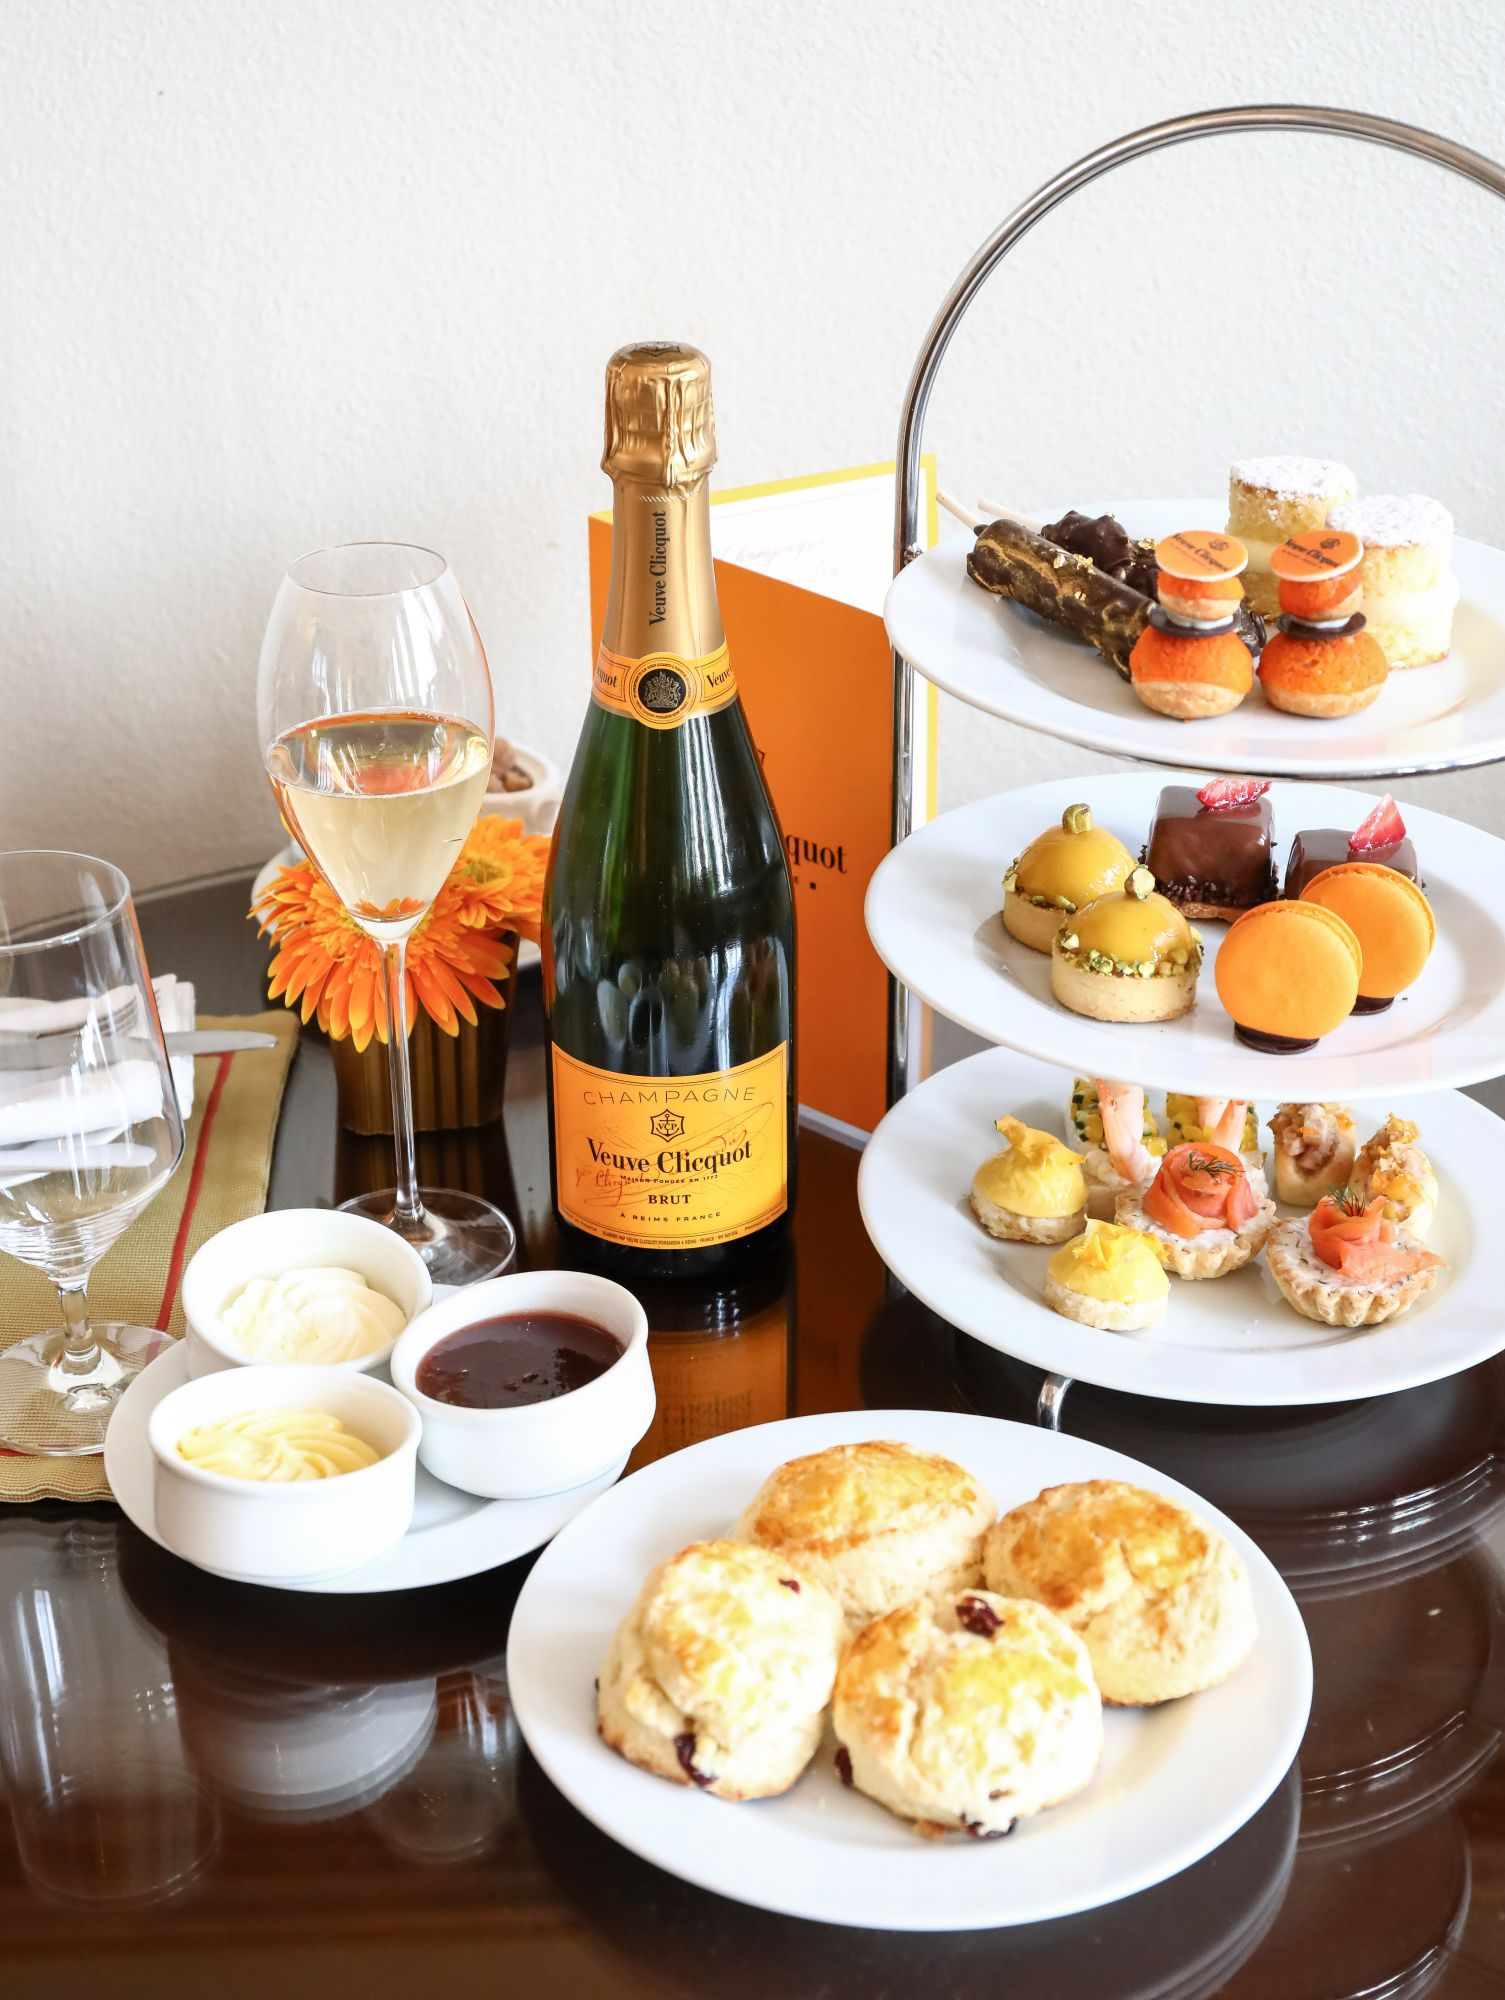 Champagne and High Tea? Why ever not!